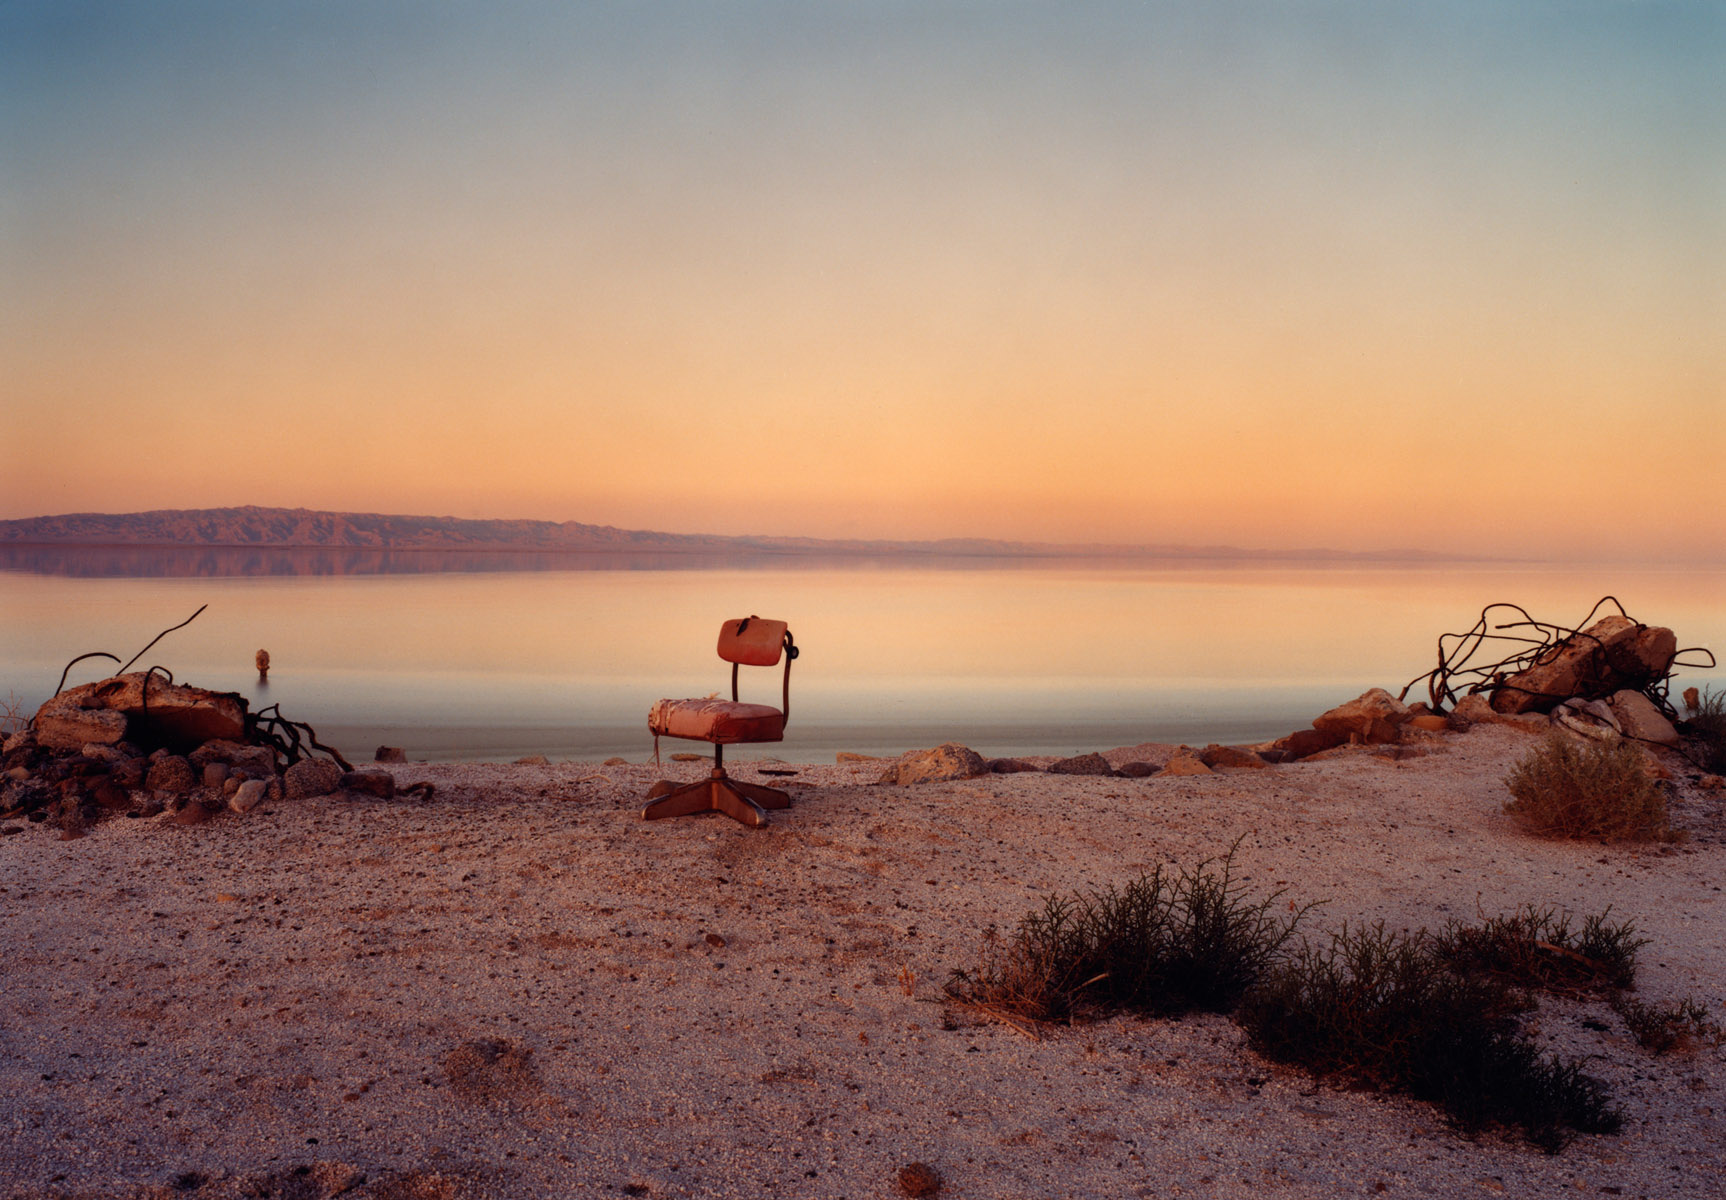 Marcus Doyle, Red Chair, Syngenta Photo Award